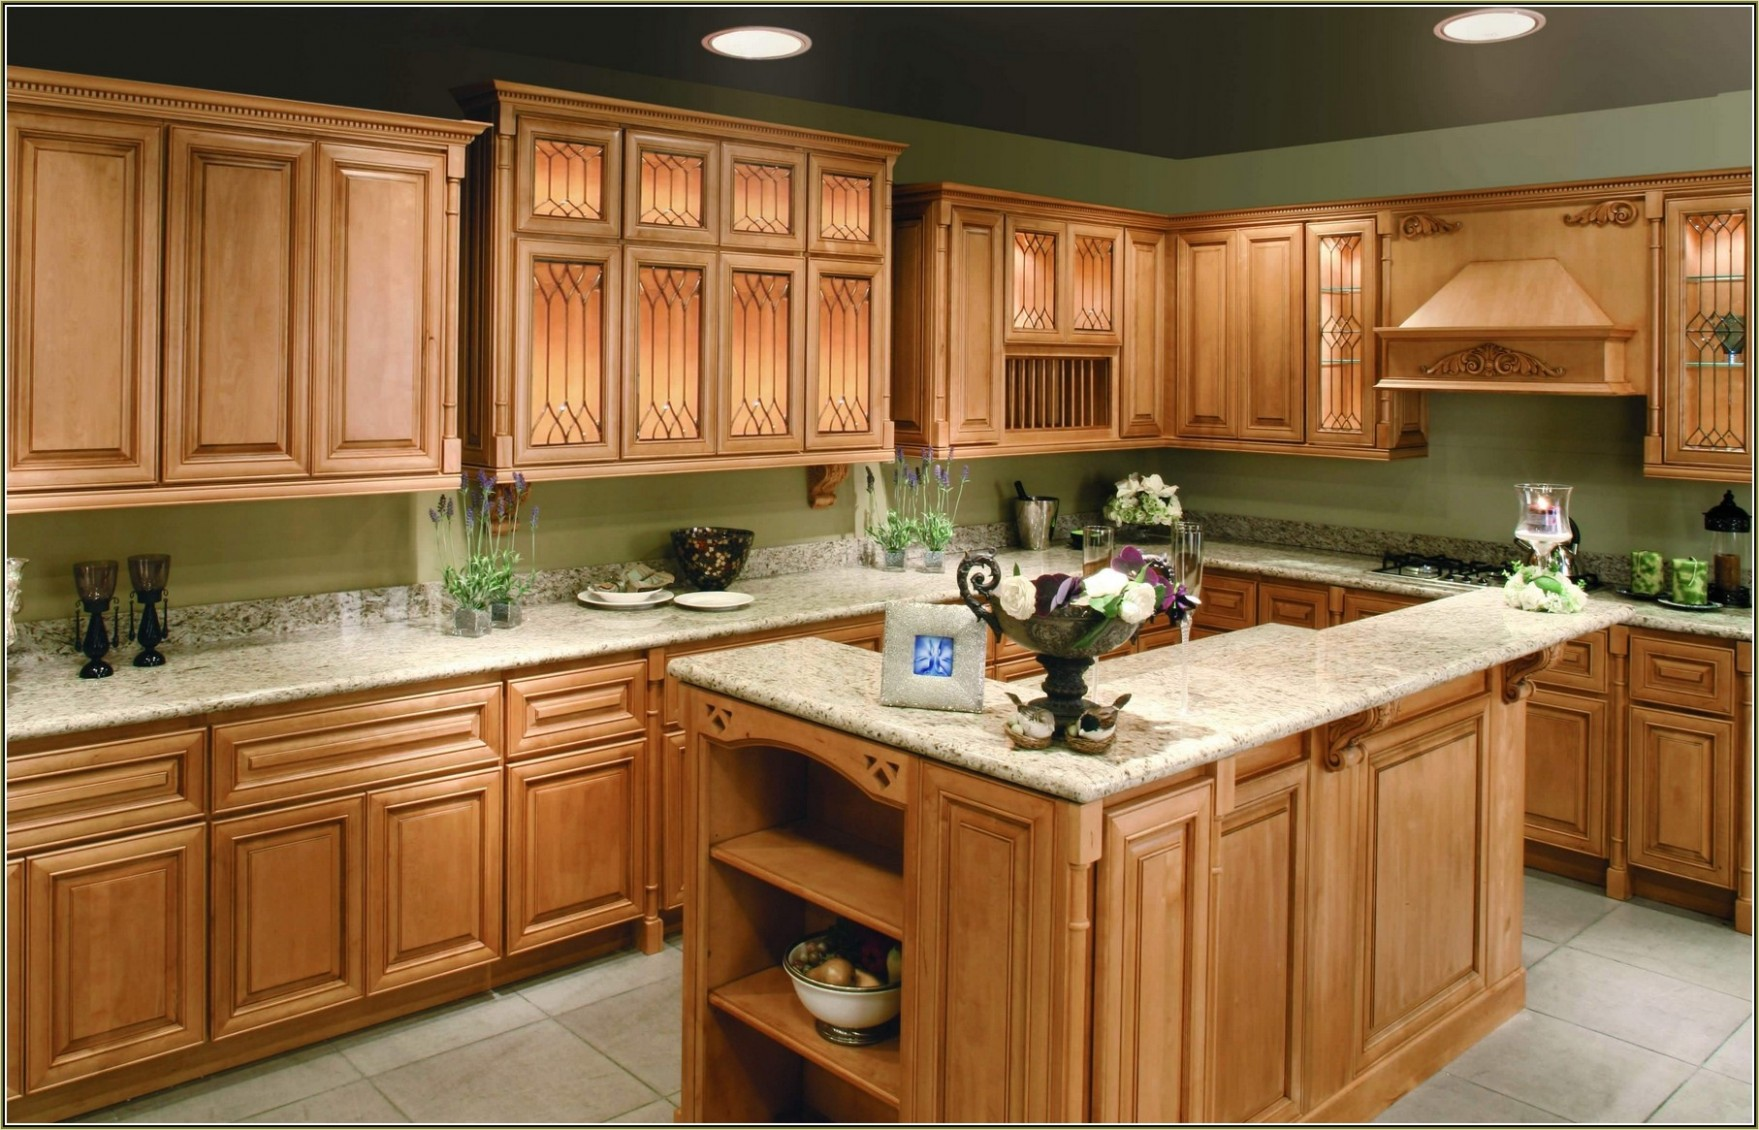 12 Attractive Kitchen with Maple Cabinets Color Ideas - Gongetech - Best Kitchen Wall Colors With Maple Cabinets